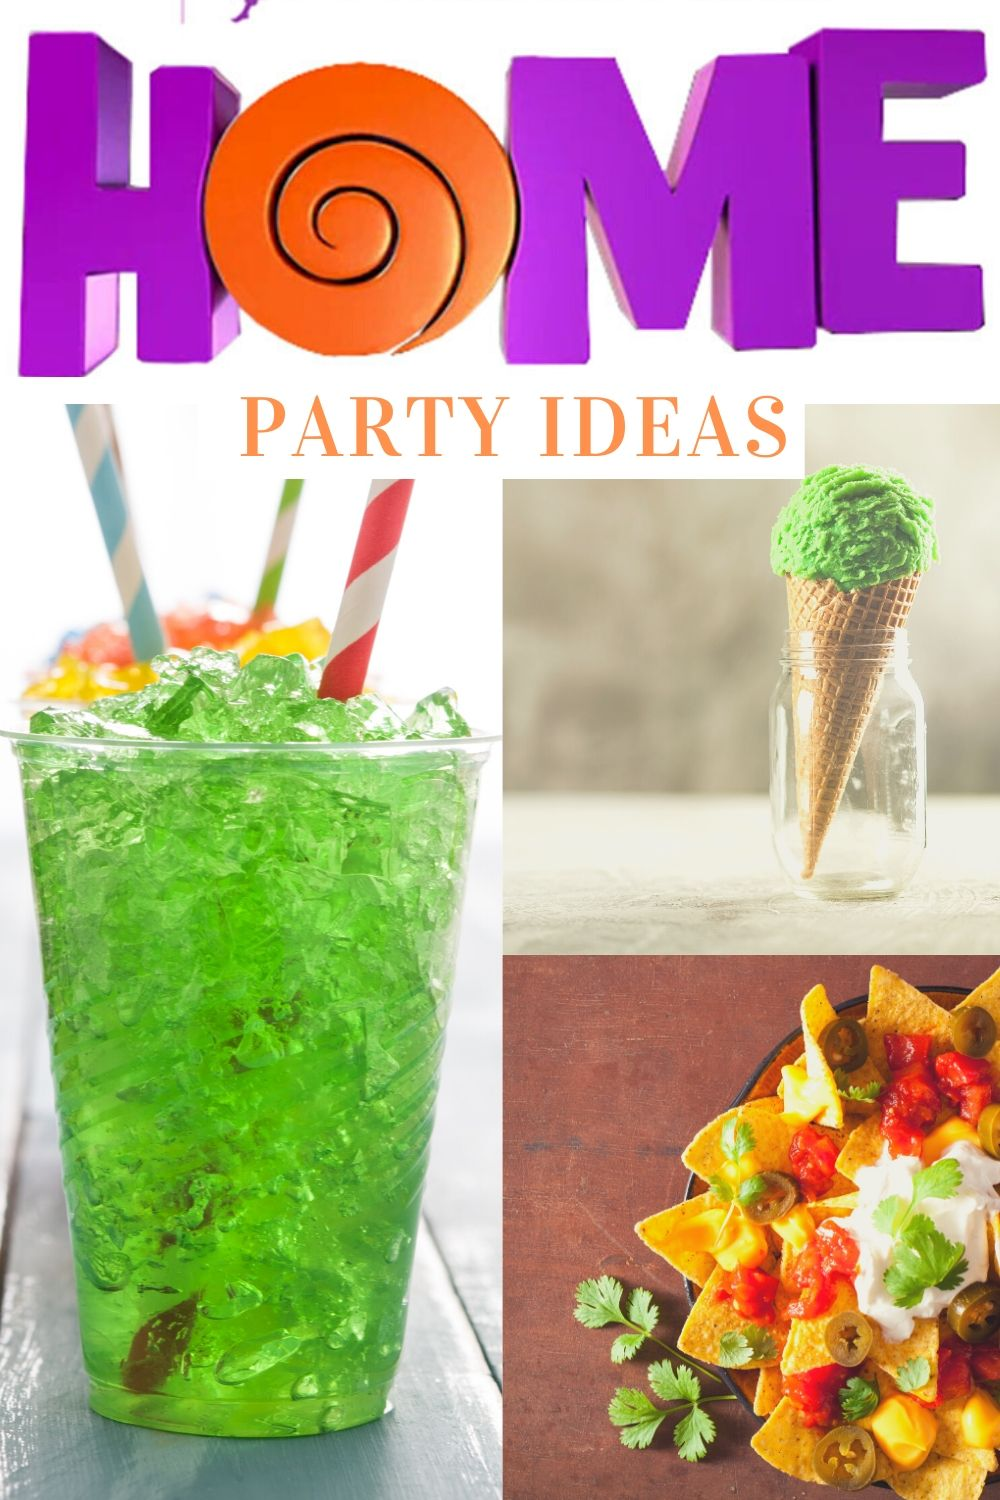 Dreamworks movie, HOME- Birthday party ideas! We have ideas for food activities and decorations to make the HOME Theme come to life. #birthdayparty #partyideas